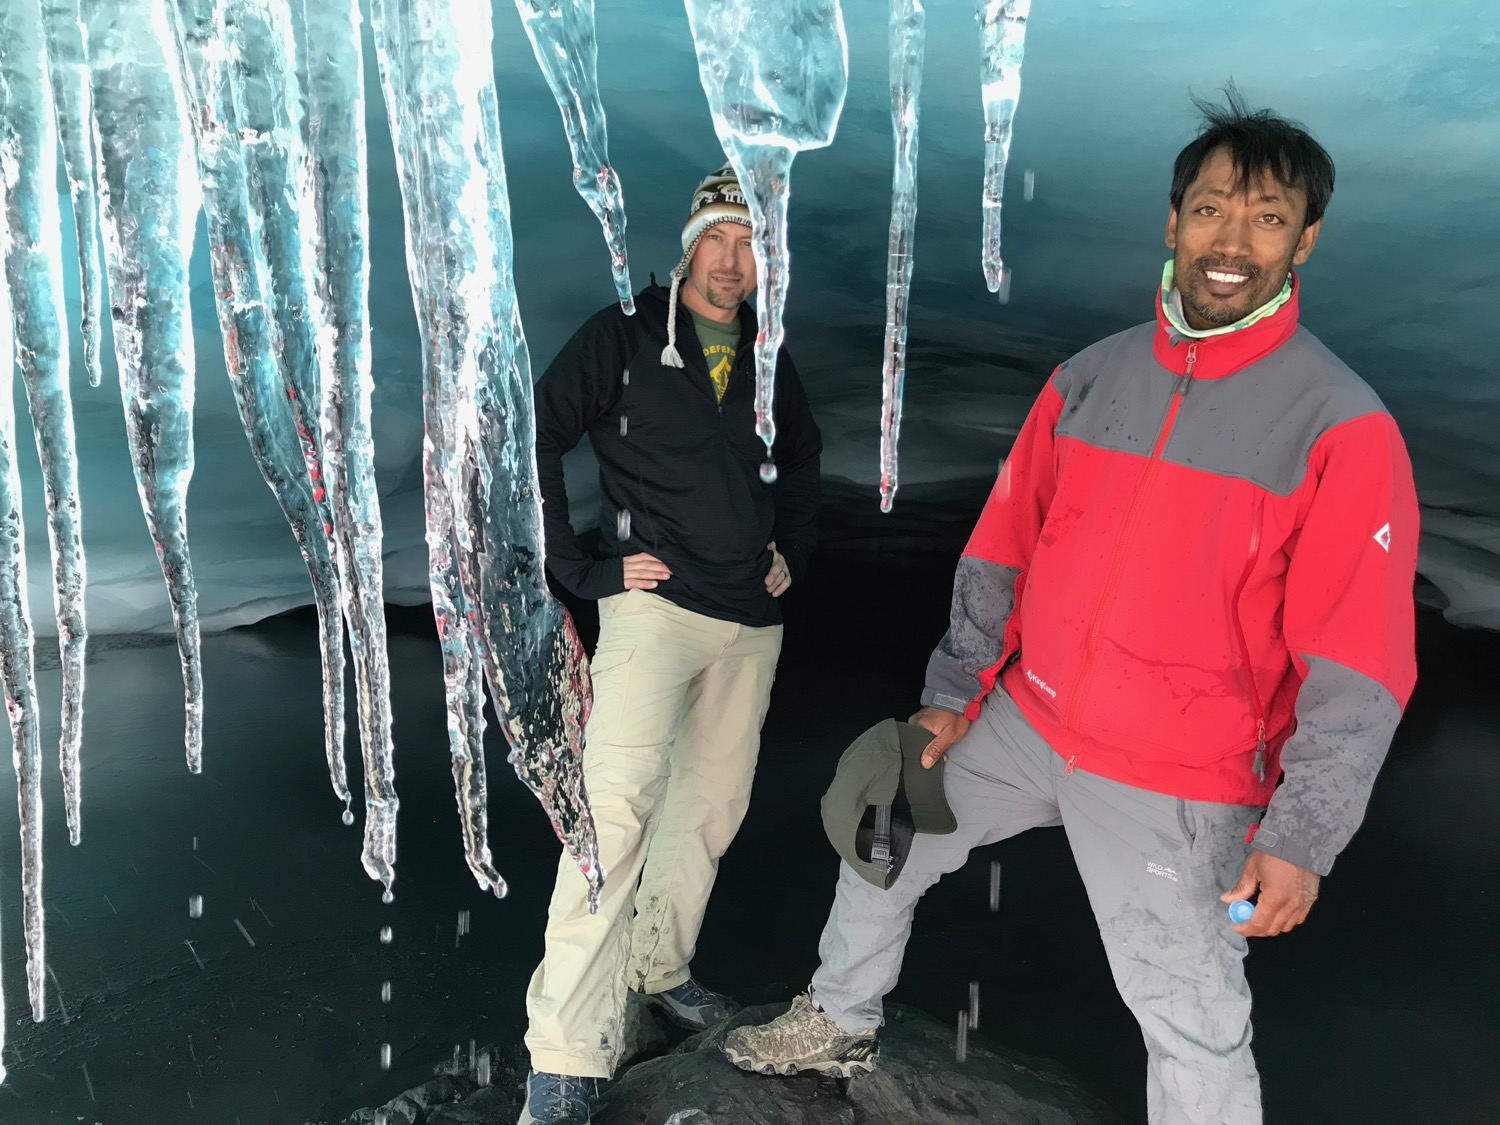 This sweet ice cave that Brother Bishnu from Nepal and I explored in 2018 no longer exists at Pastoruri.